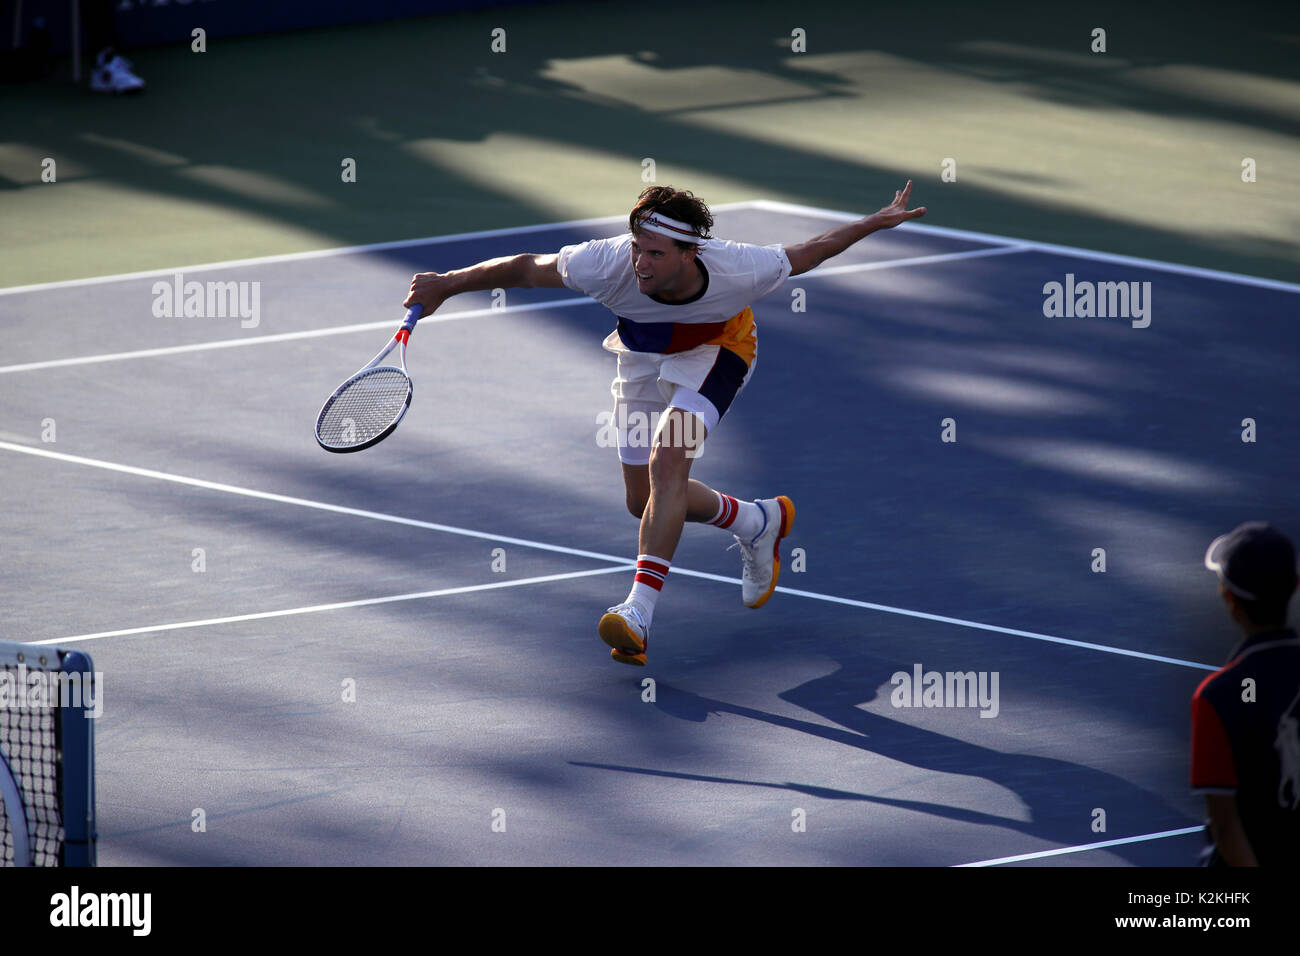 New York, United States. 31st Aug, 2017. US Open Tennis: New York, 31 August, 2017 - Austria's Dominic Thiem during Stock Photo